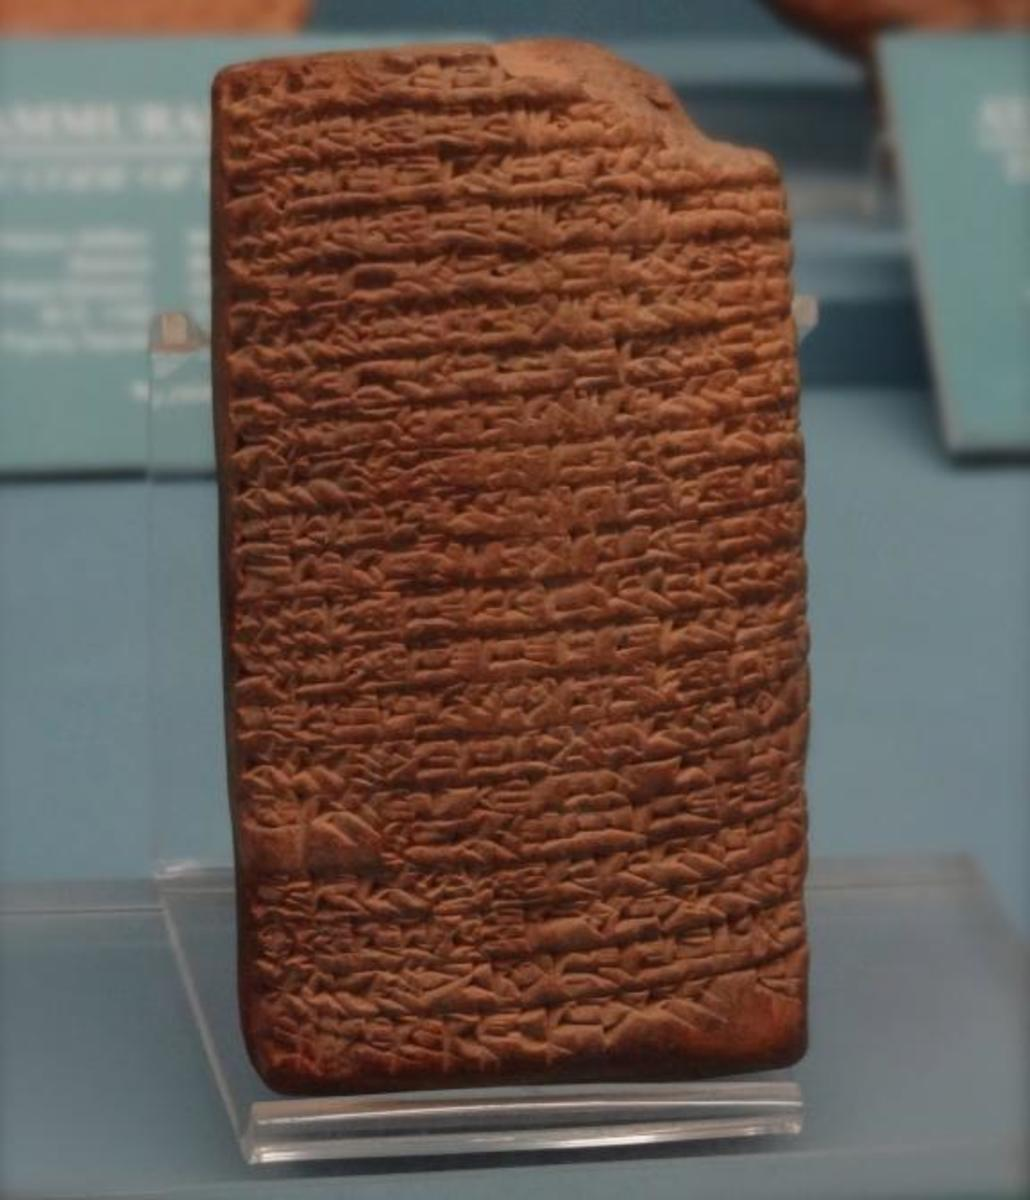 The clay tablet holding the oldest love poem.